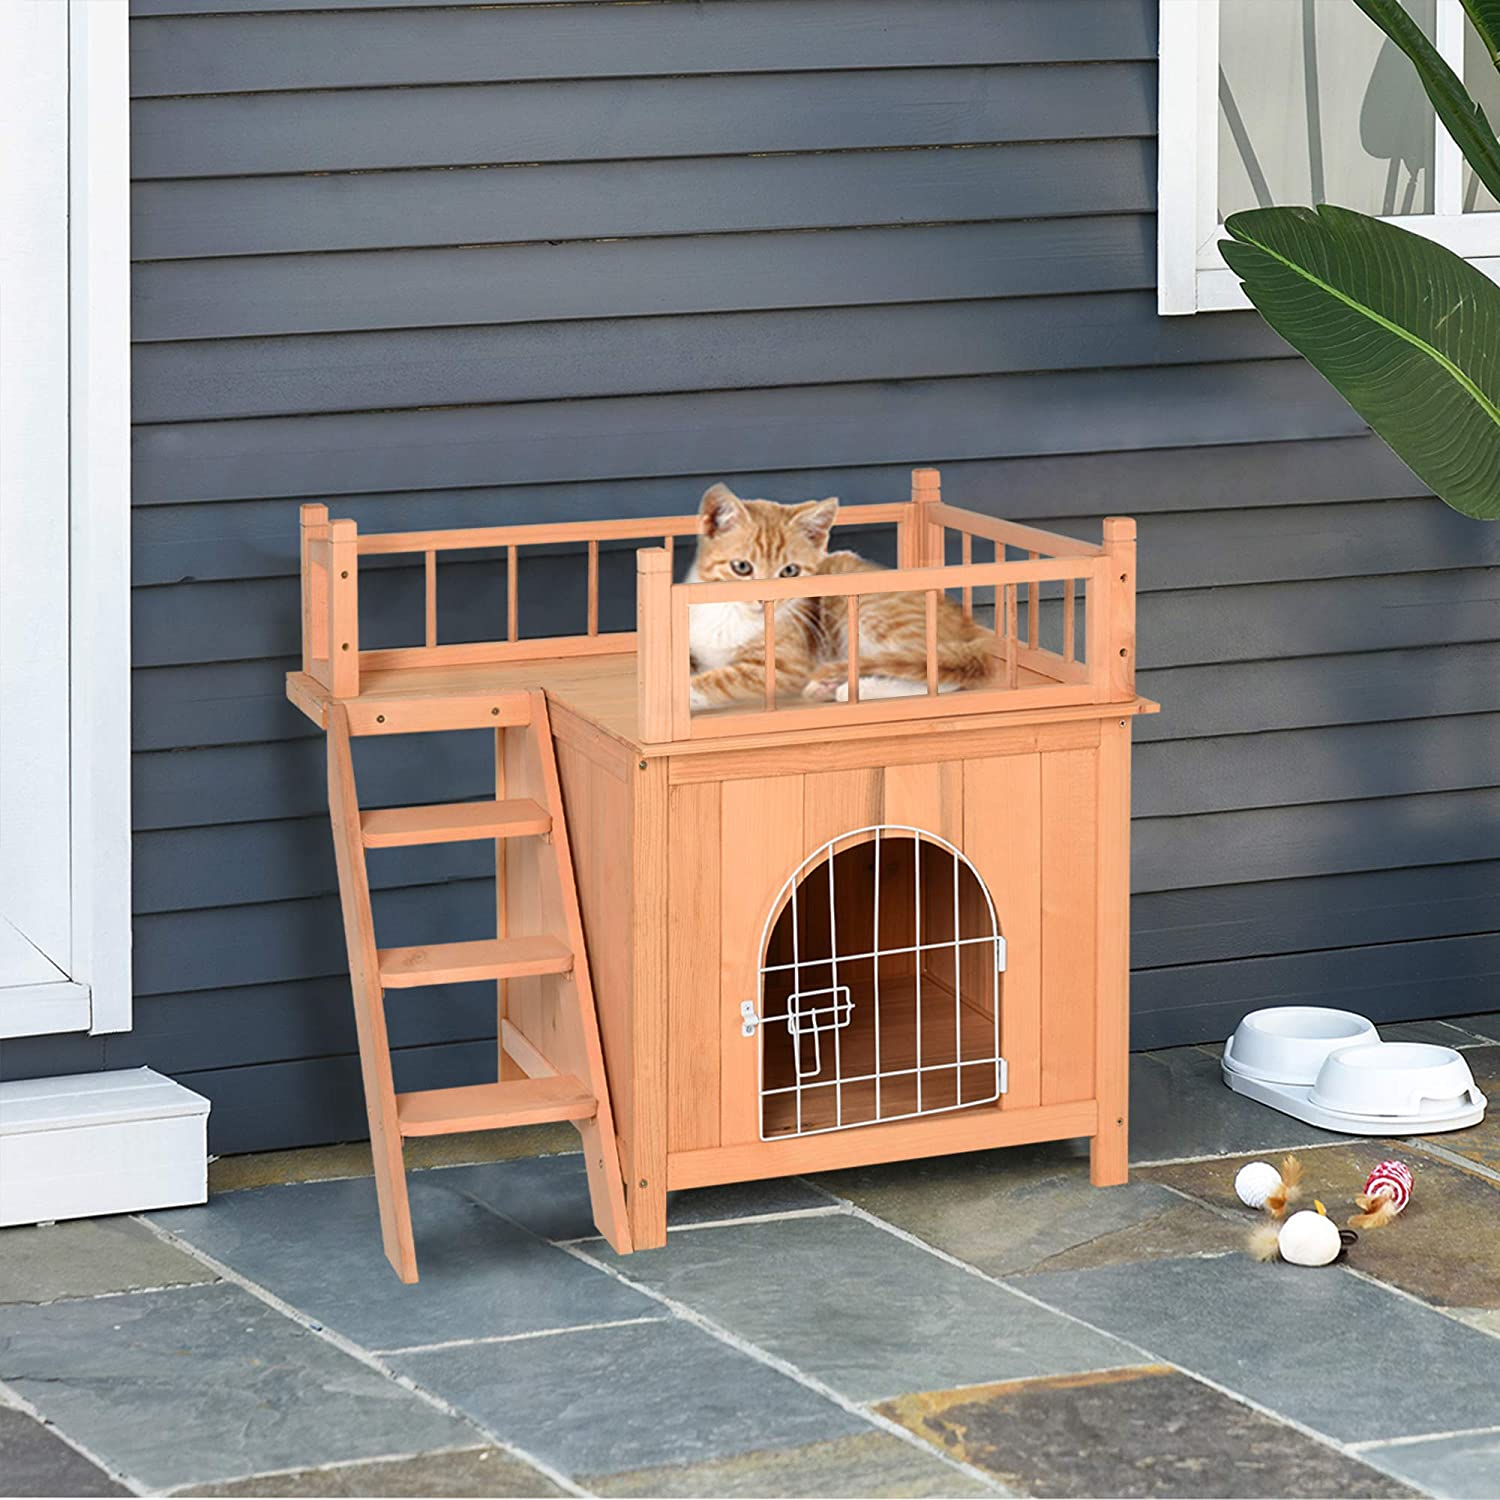 2 Level Raised Waterproof Outside Wooden Cat Shelter With Balcony and Stairs